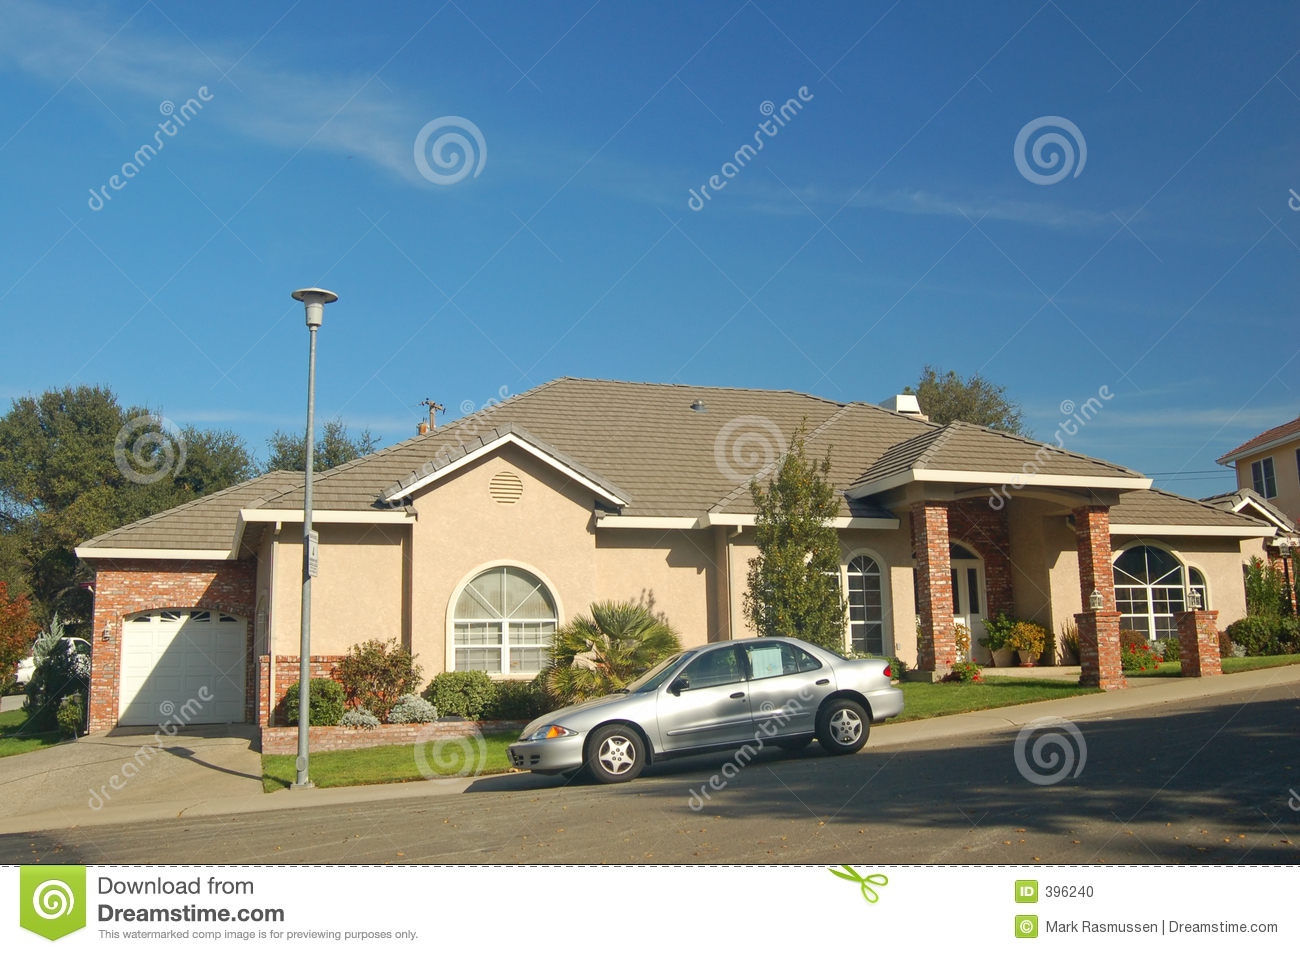 Nice house in the suburbs stock photo image of living for Nice home image